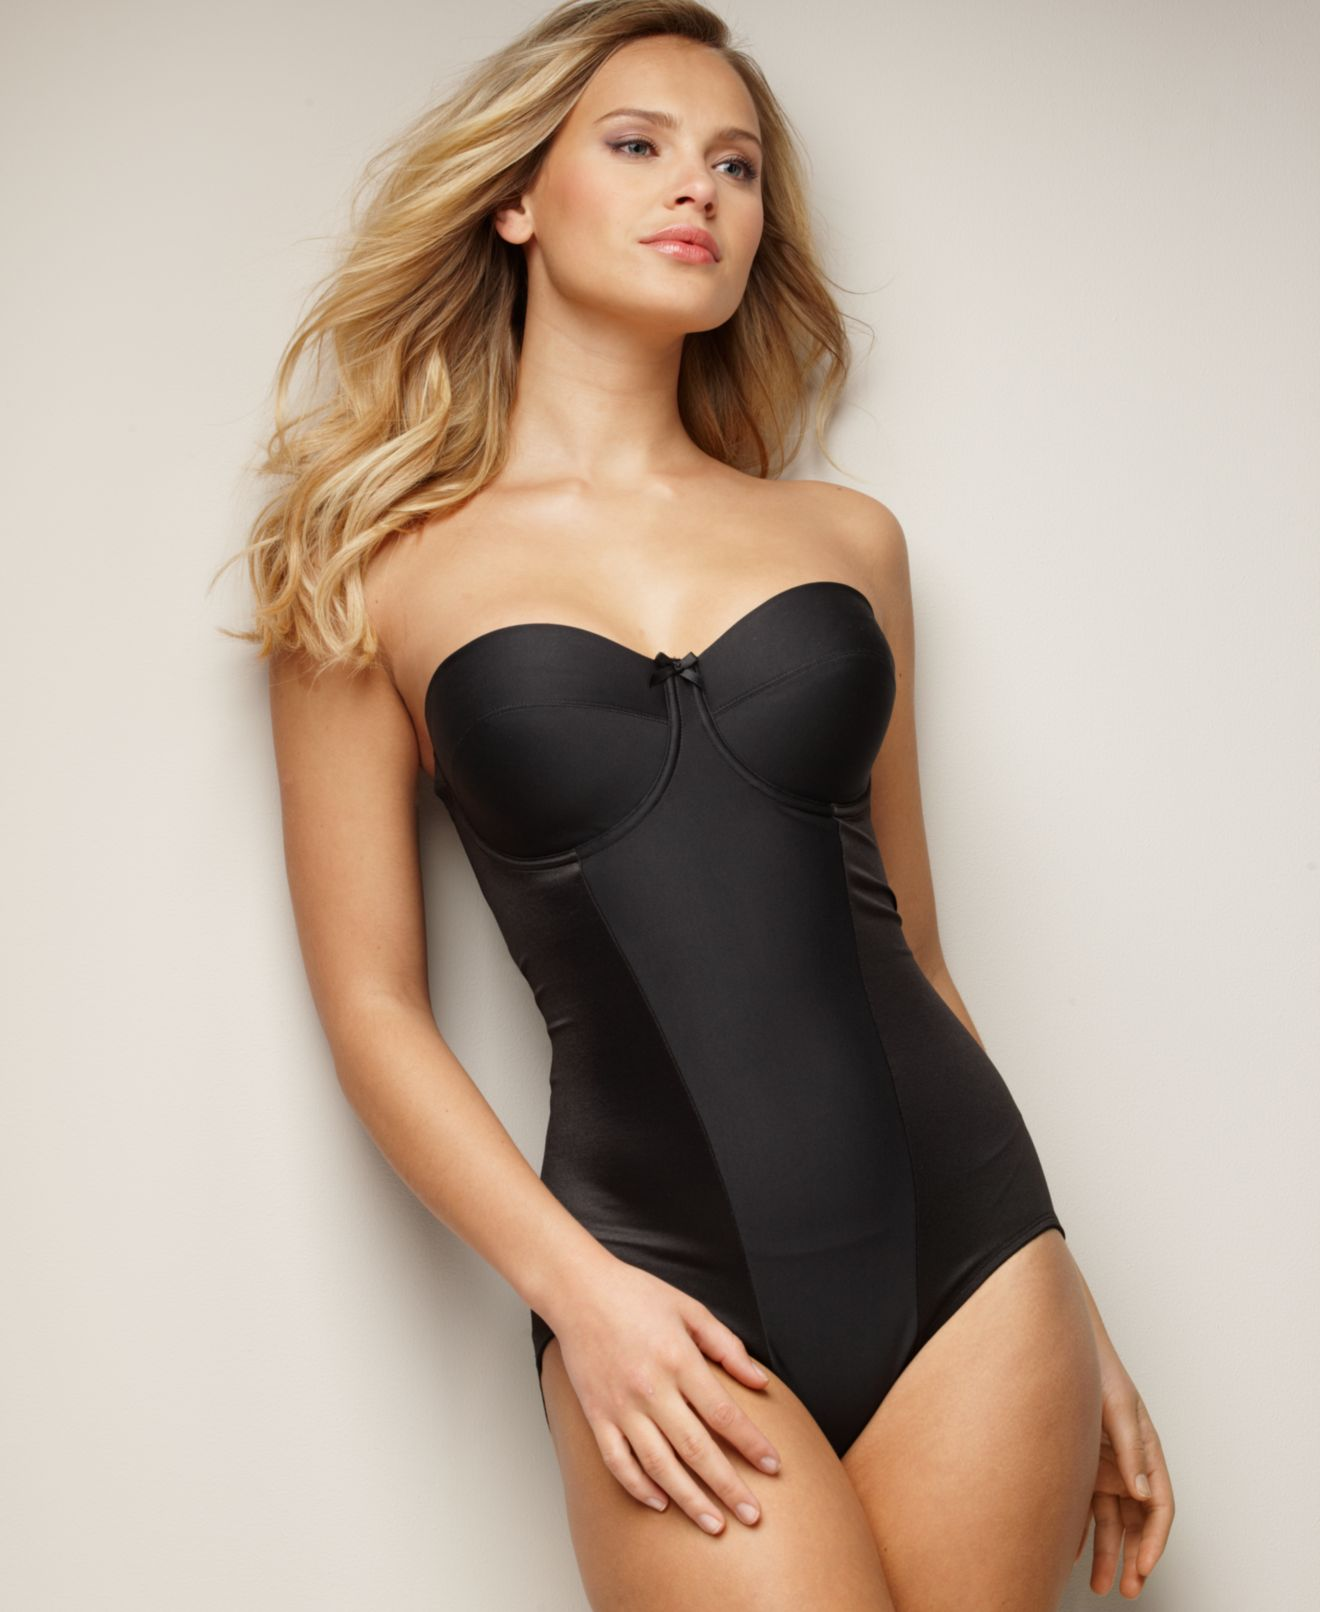 Strapless Body Briefer Strapless Body Shaper 2793